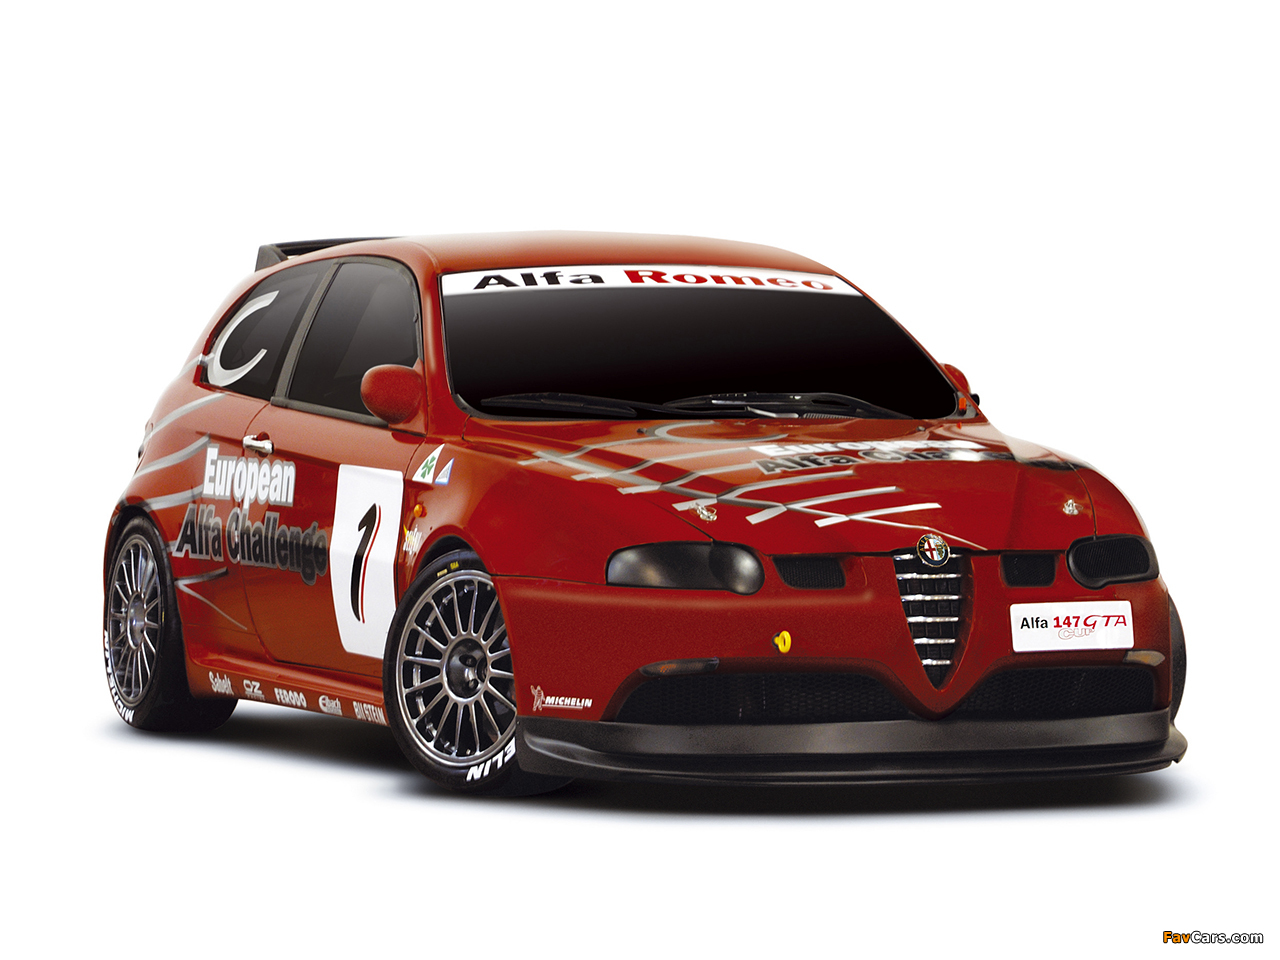 Alfa Romeo 147 Gta Cup Se092 2003 2005 Wallpapers 1280x960